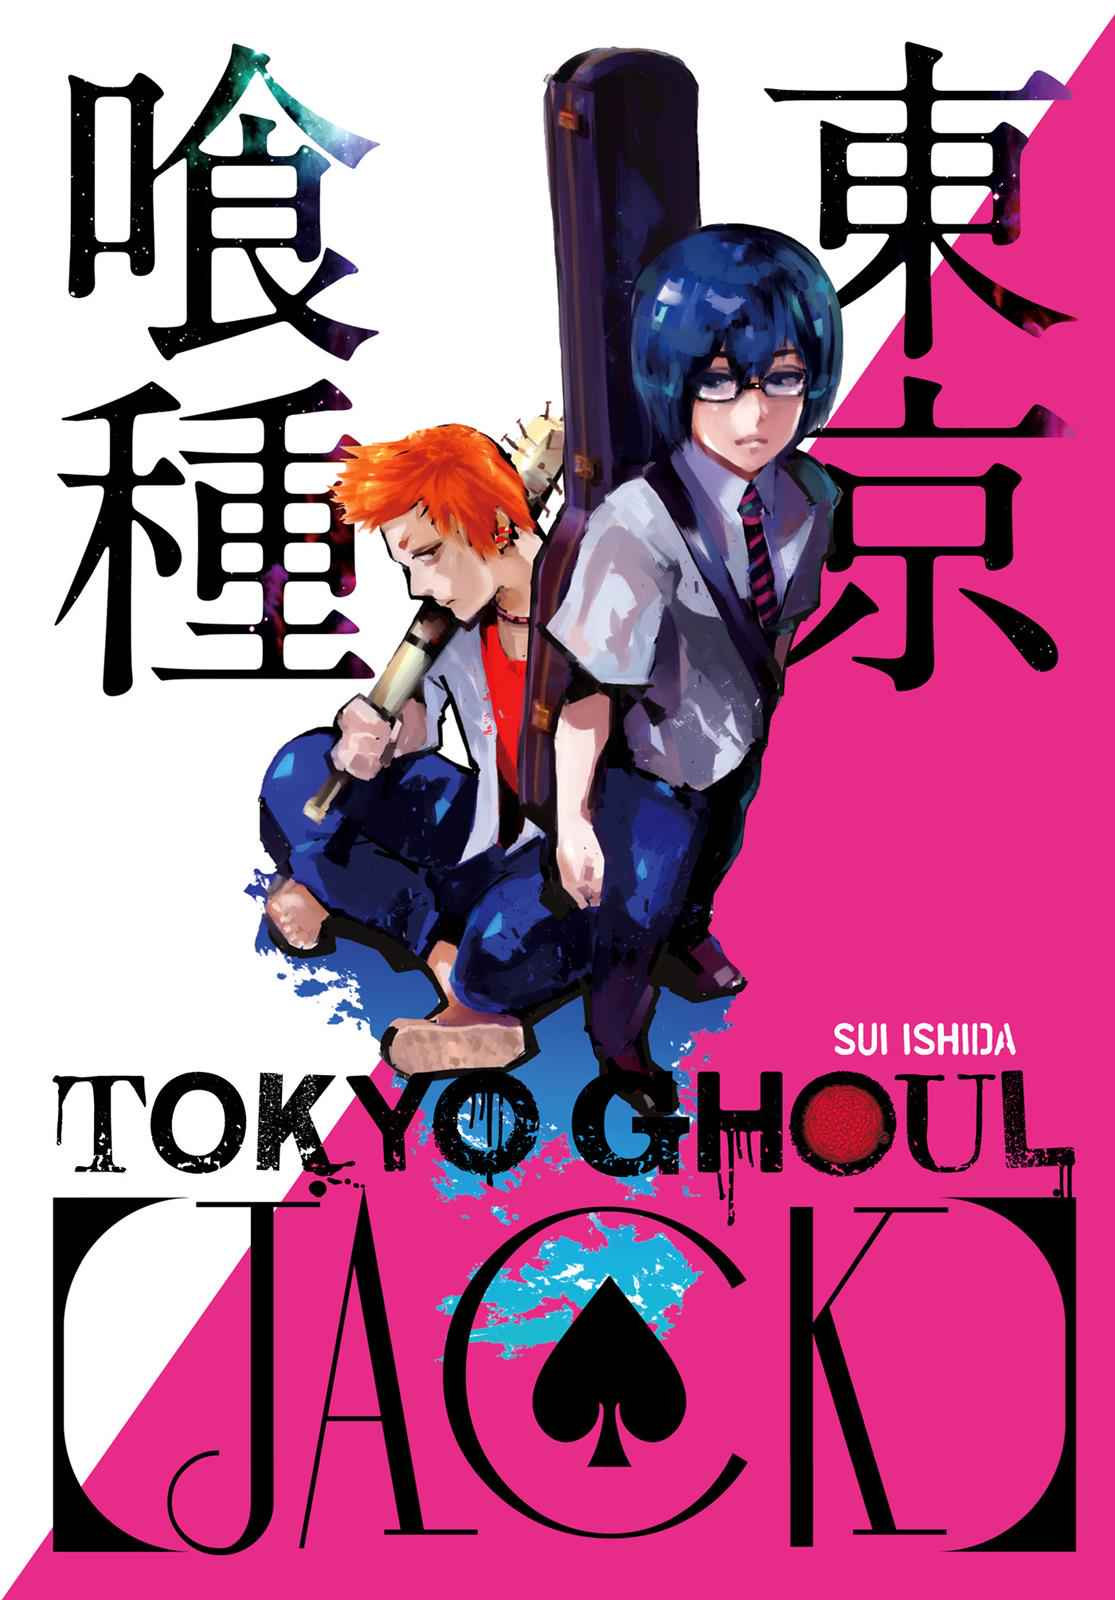 Tokyo Ghoul - Jack Chapter 1 Page 1